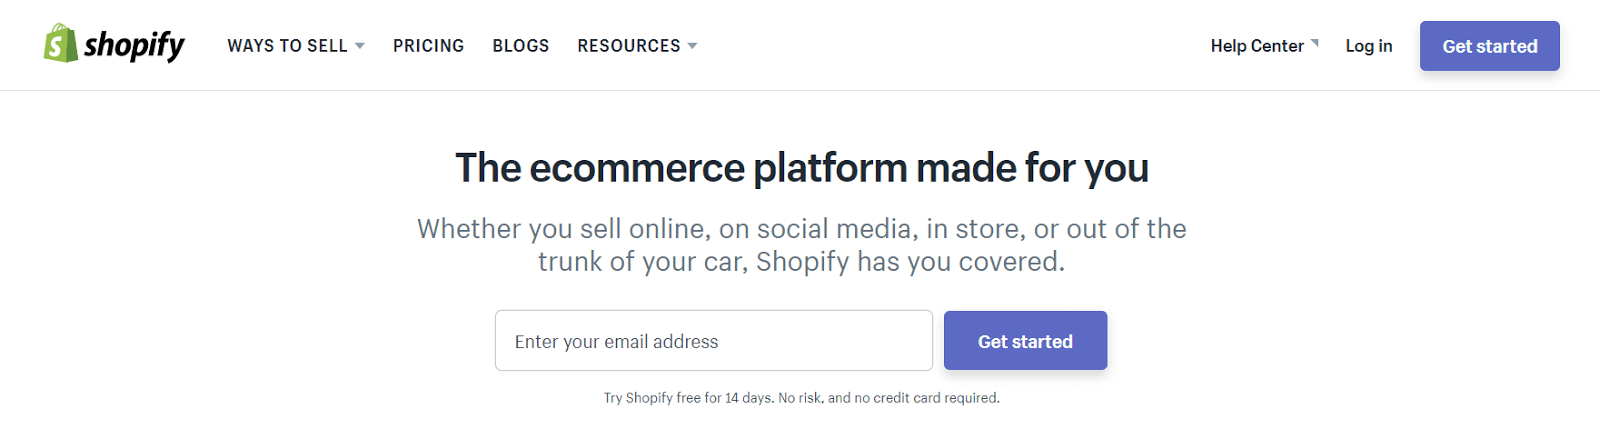 shopify-home-page.PNG